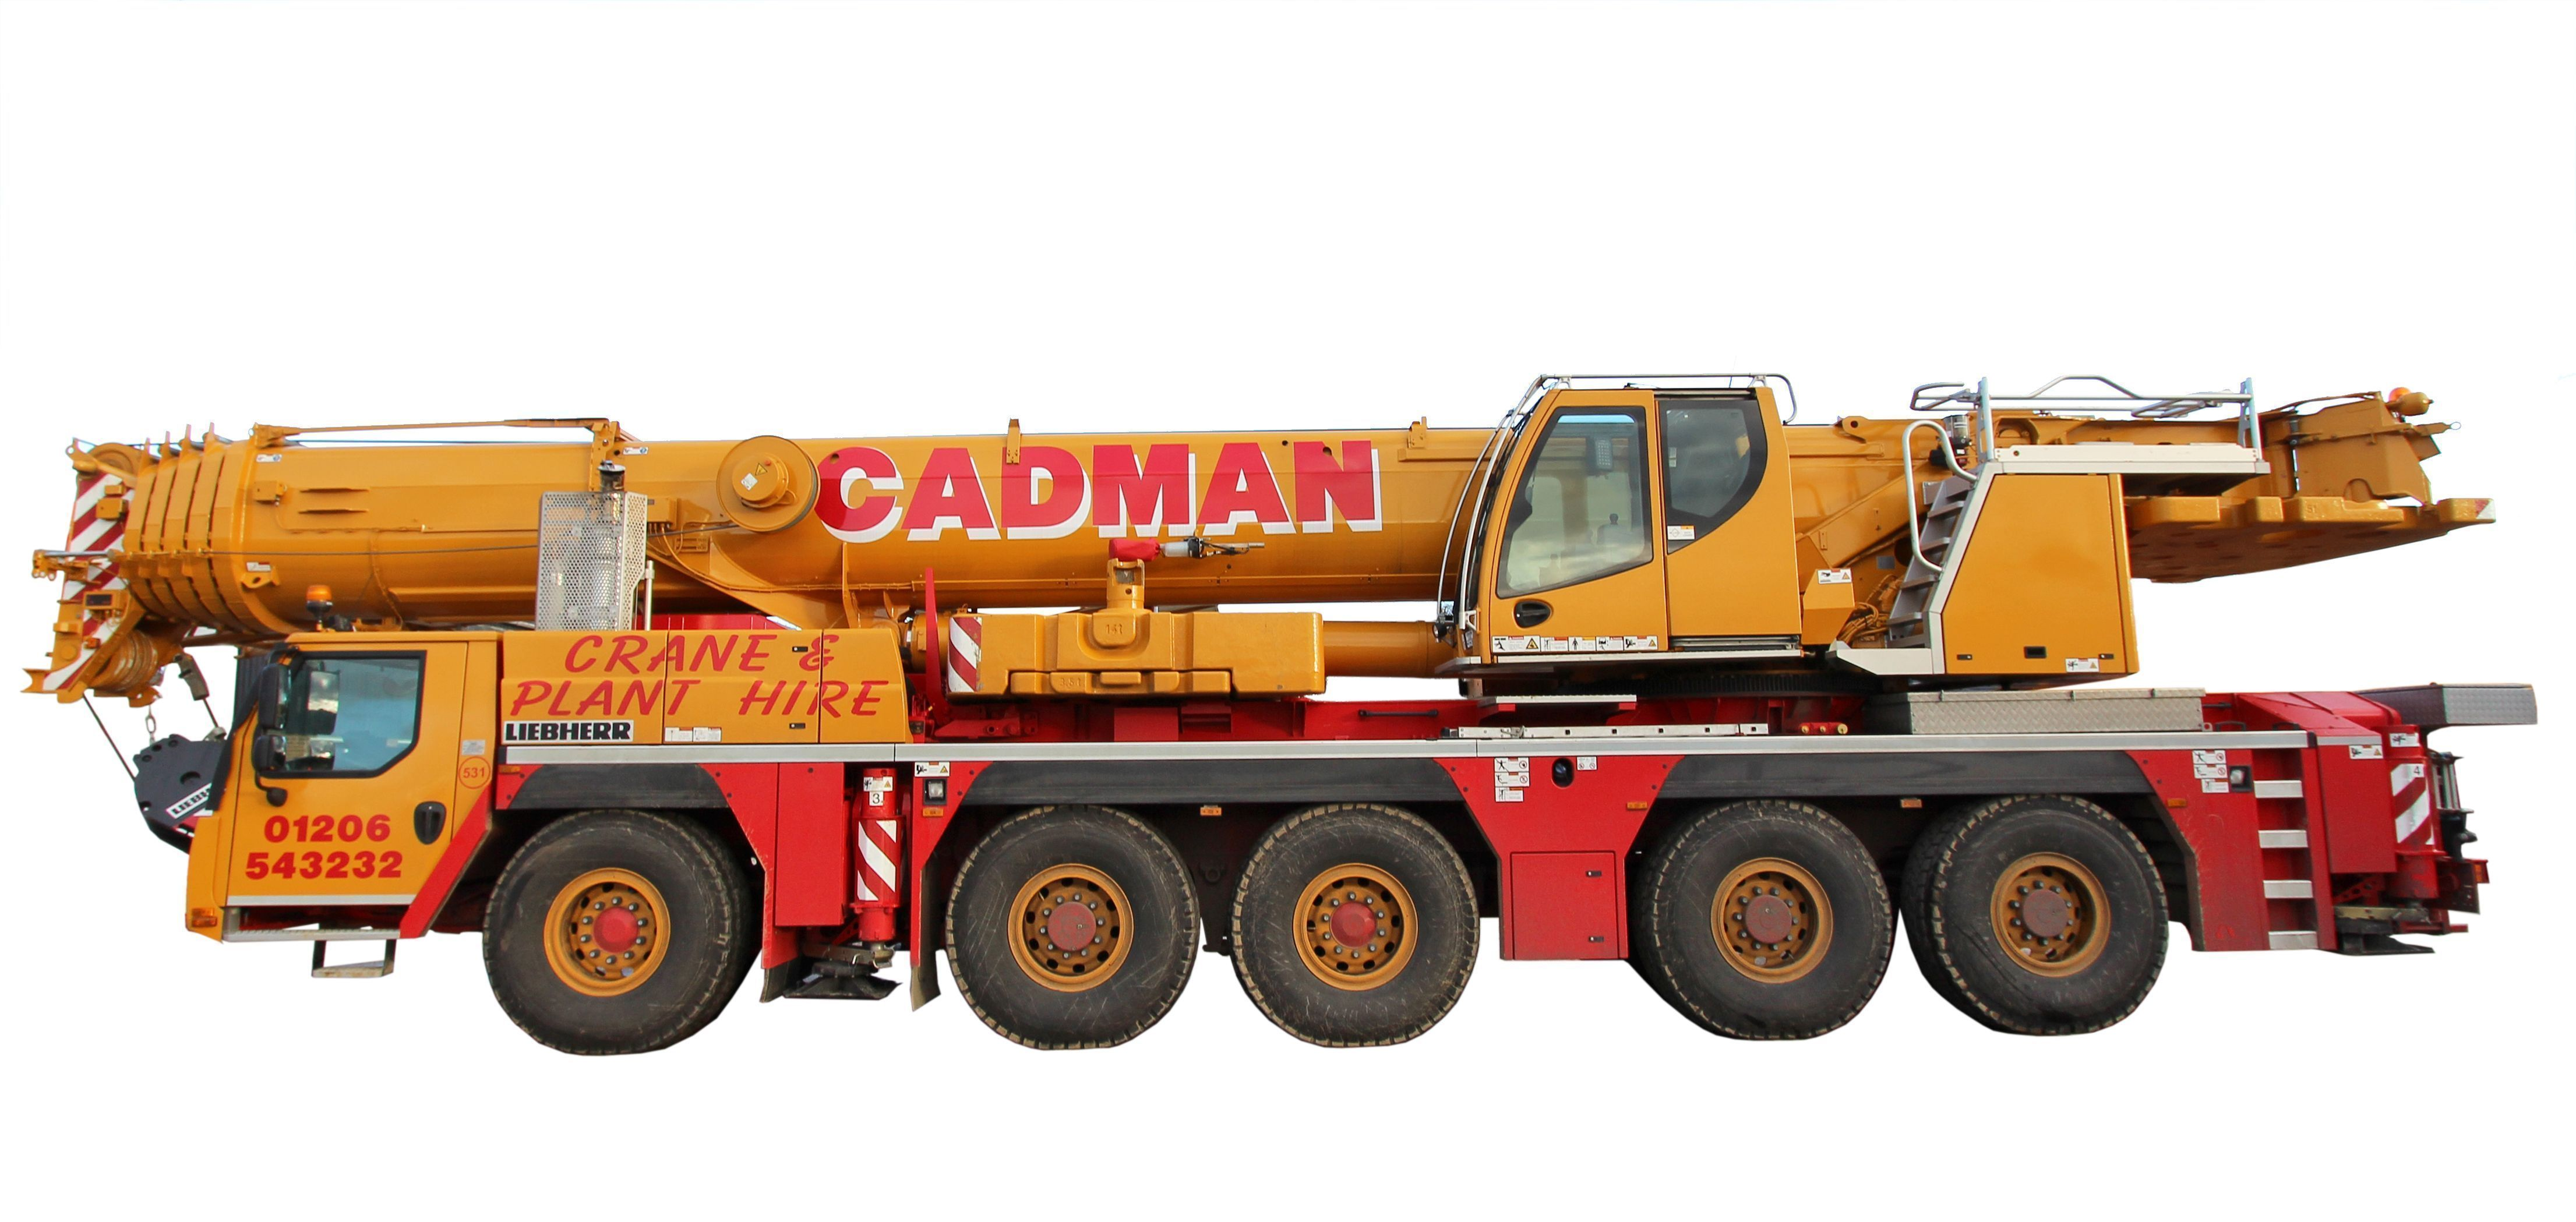 Cadman Cranes Ltd, now in its 40th year of crane operation, has purchased  the LTM 1160-5.2 mobile crane to add to its fleet of 22 cranes.